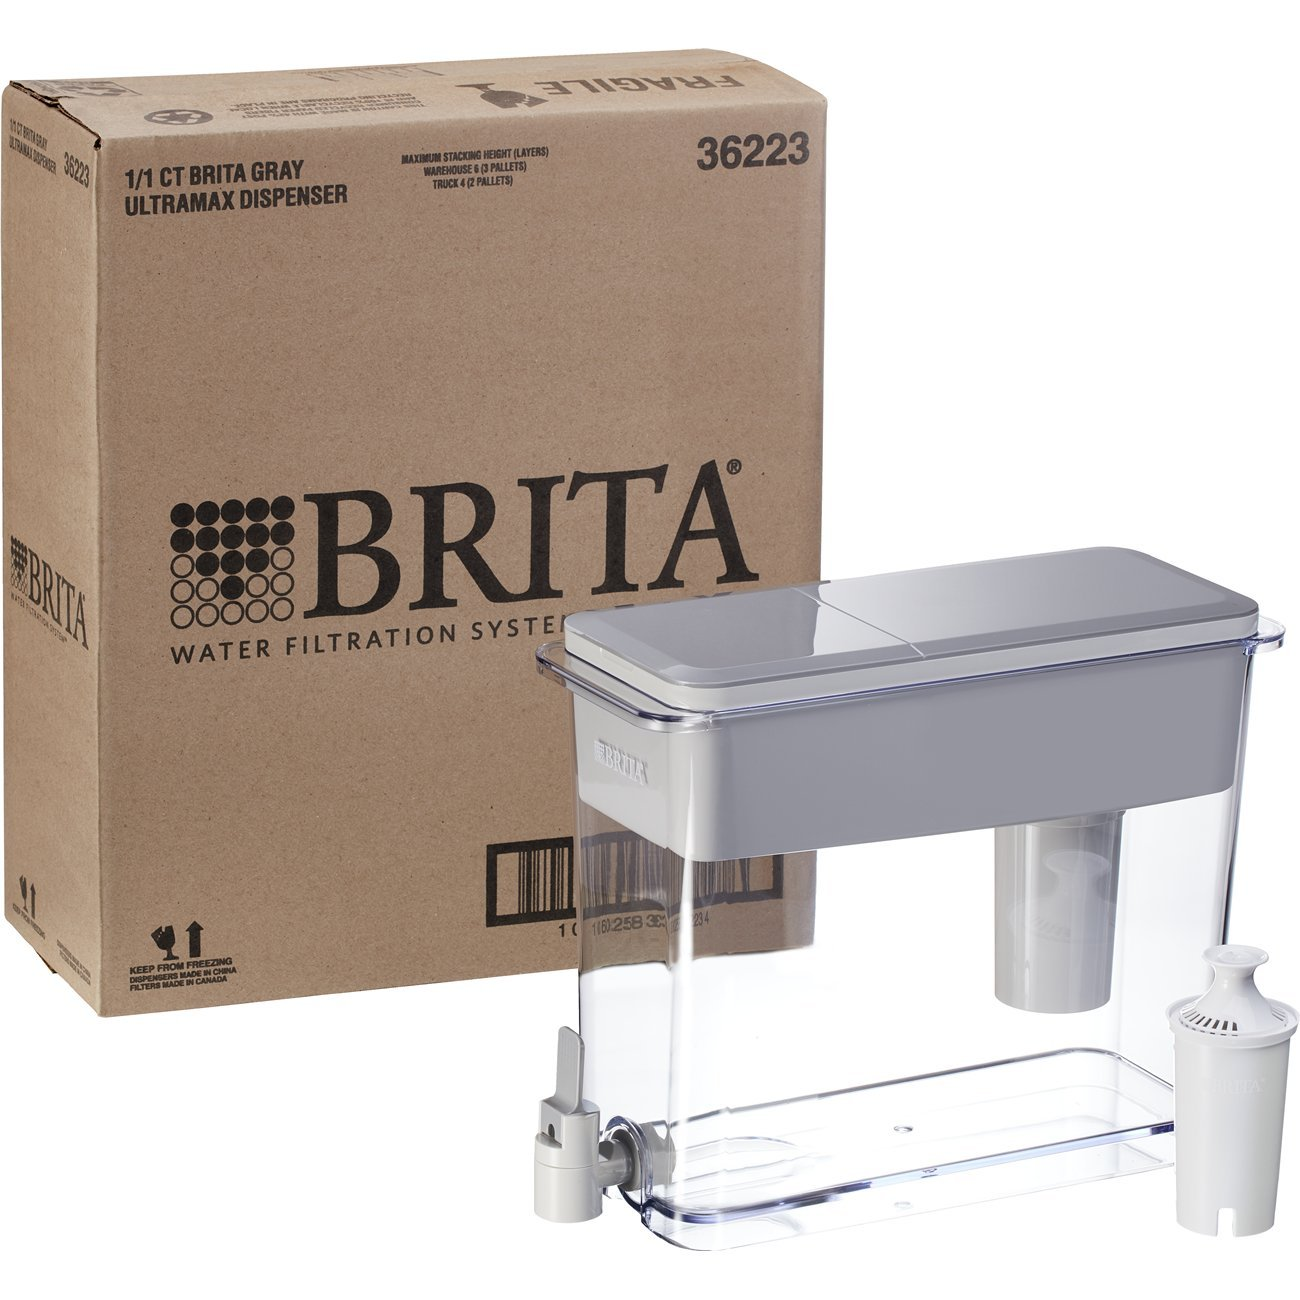 Brita Extra Large 18 Cup Filtered Water Dispenser with 1 Standard Filter, BPA Free – UltraMax, Gray by Brita (Image #5)